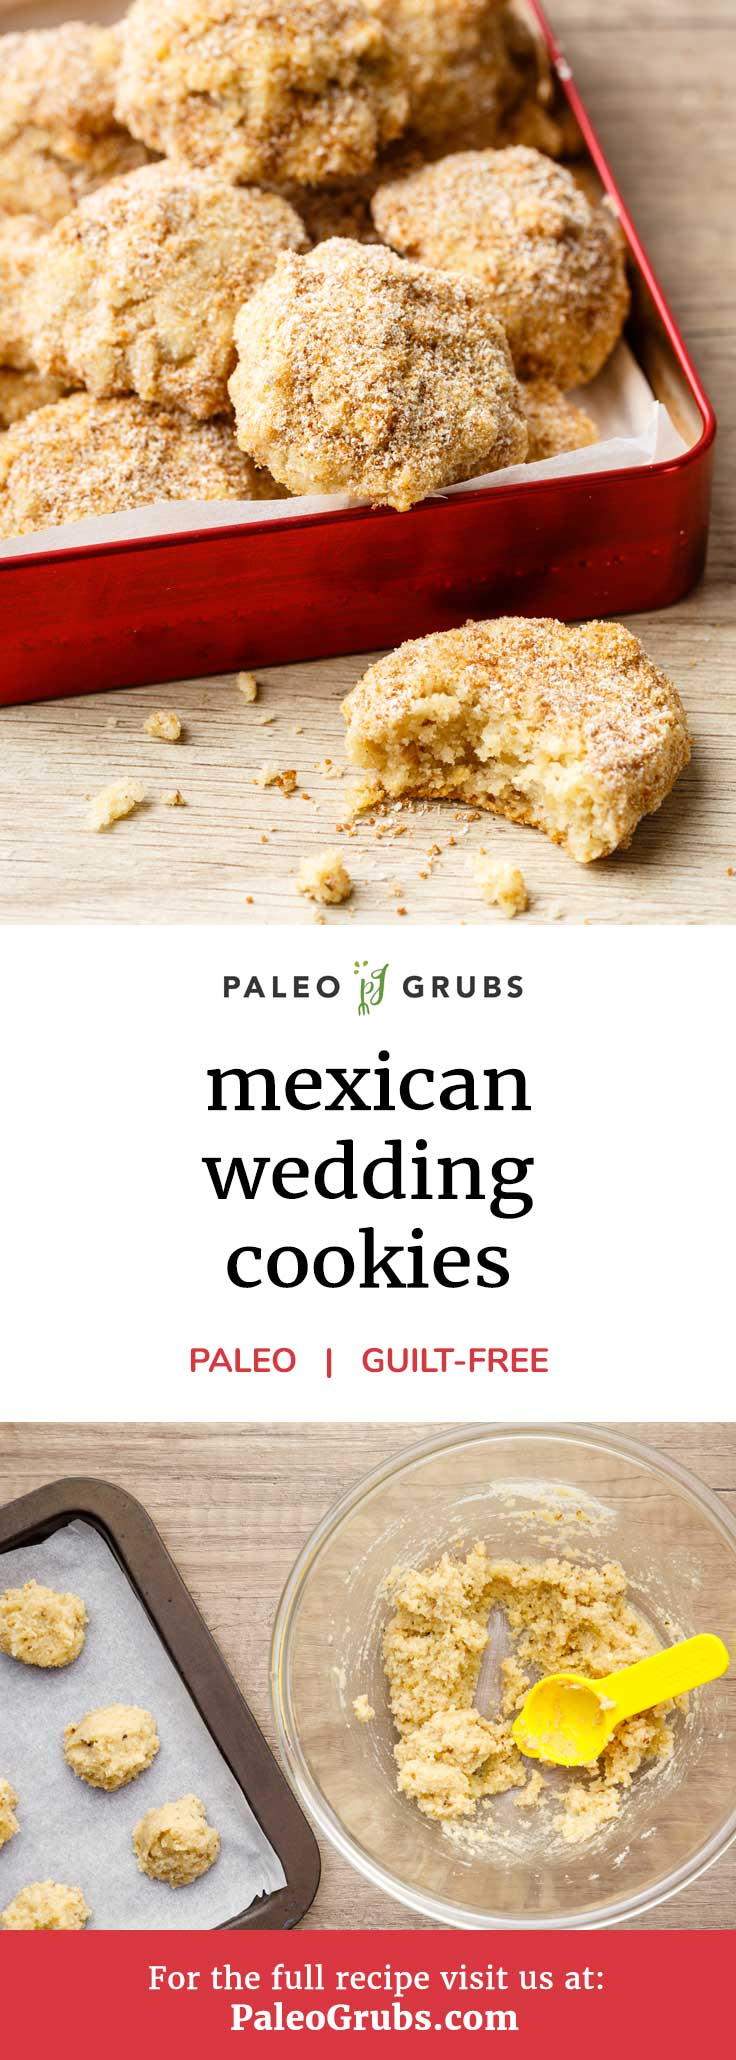 Mexican wedding cookies (also known as Mexican wedding cakes despite being a cookie) are a delicious baked treat commonly served at weddings and other sorts of celebrations in Mexico. They're a yummy cookie that is usually held together by flour, butter, sugar, and nuts. This recipe slots in almond flour, ghee, and maple syrup to make a paleo-friendly version that effortlessly rivals the original version.